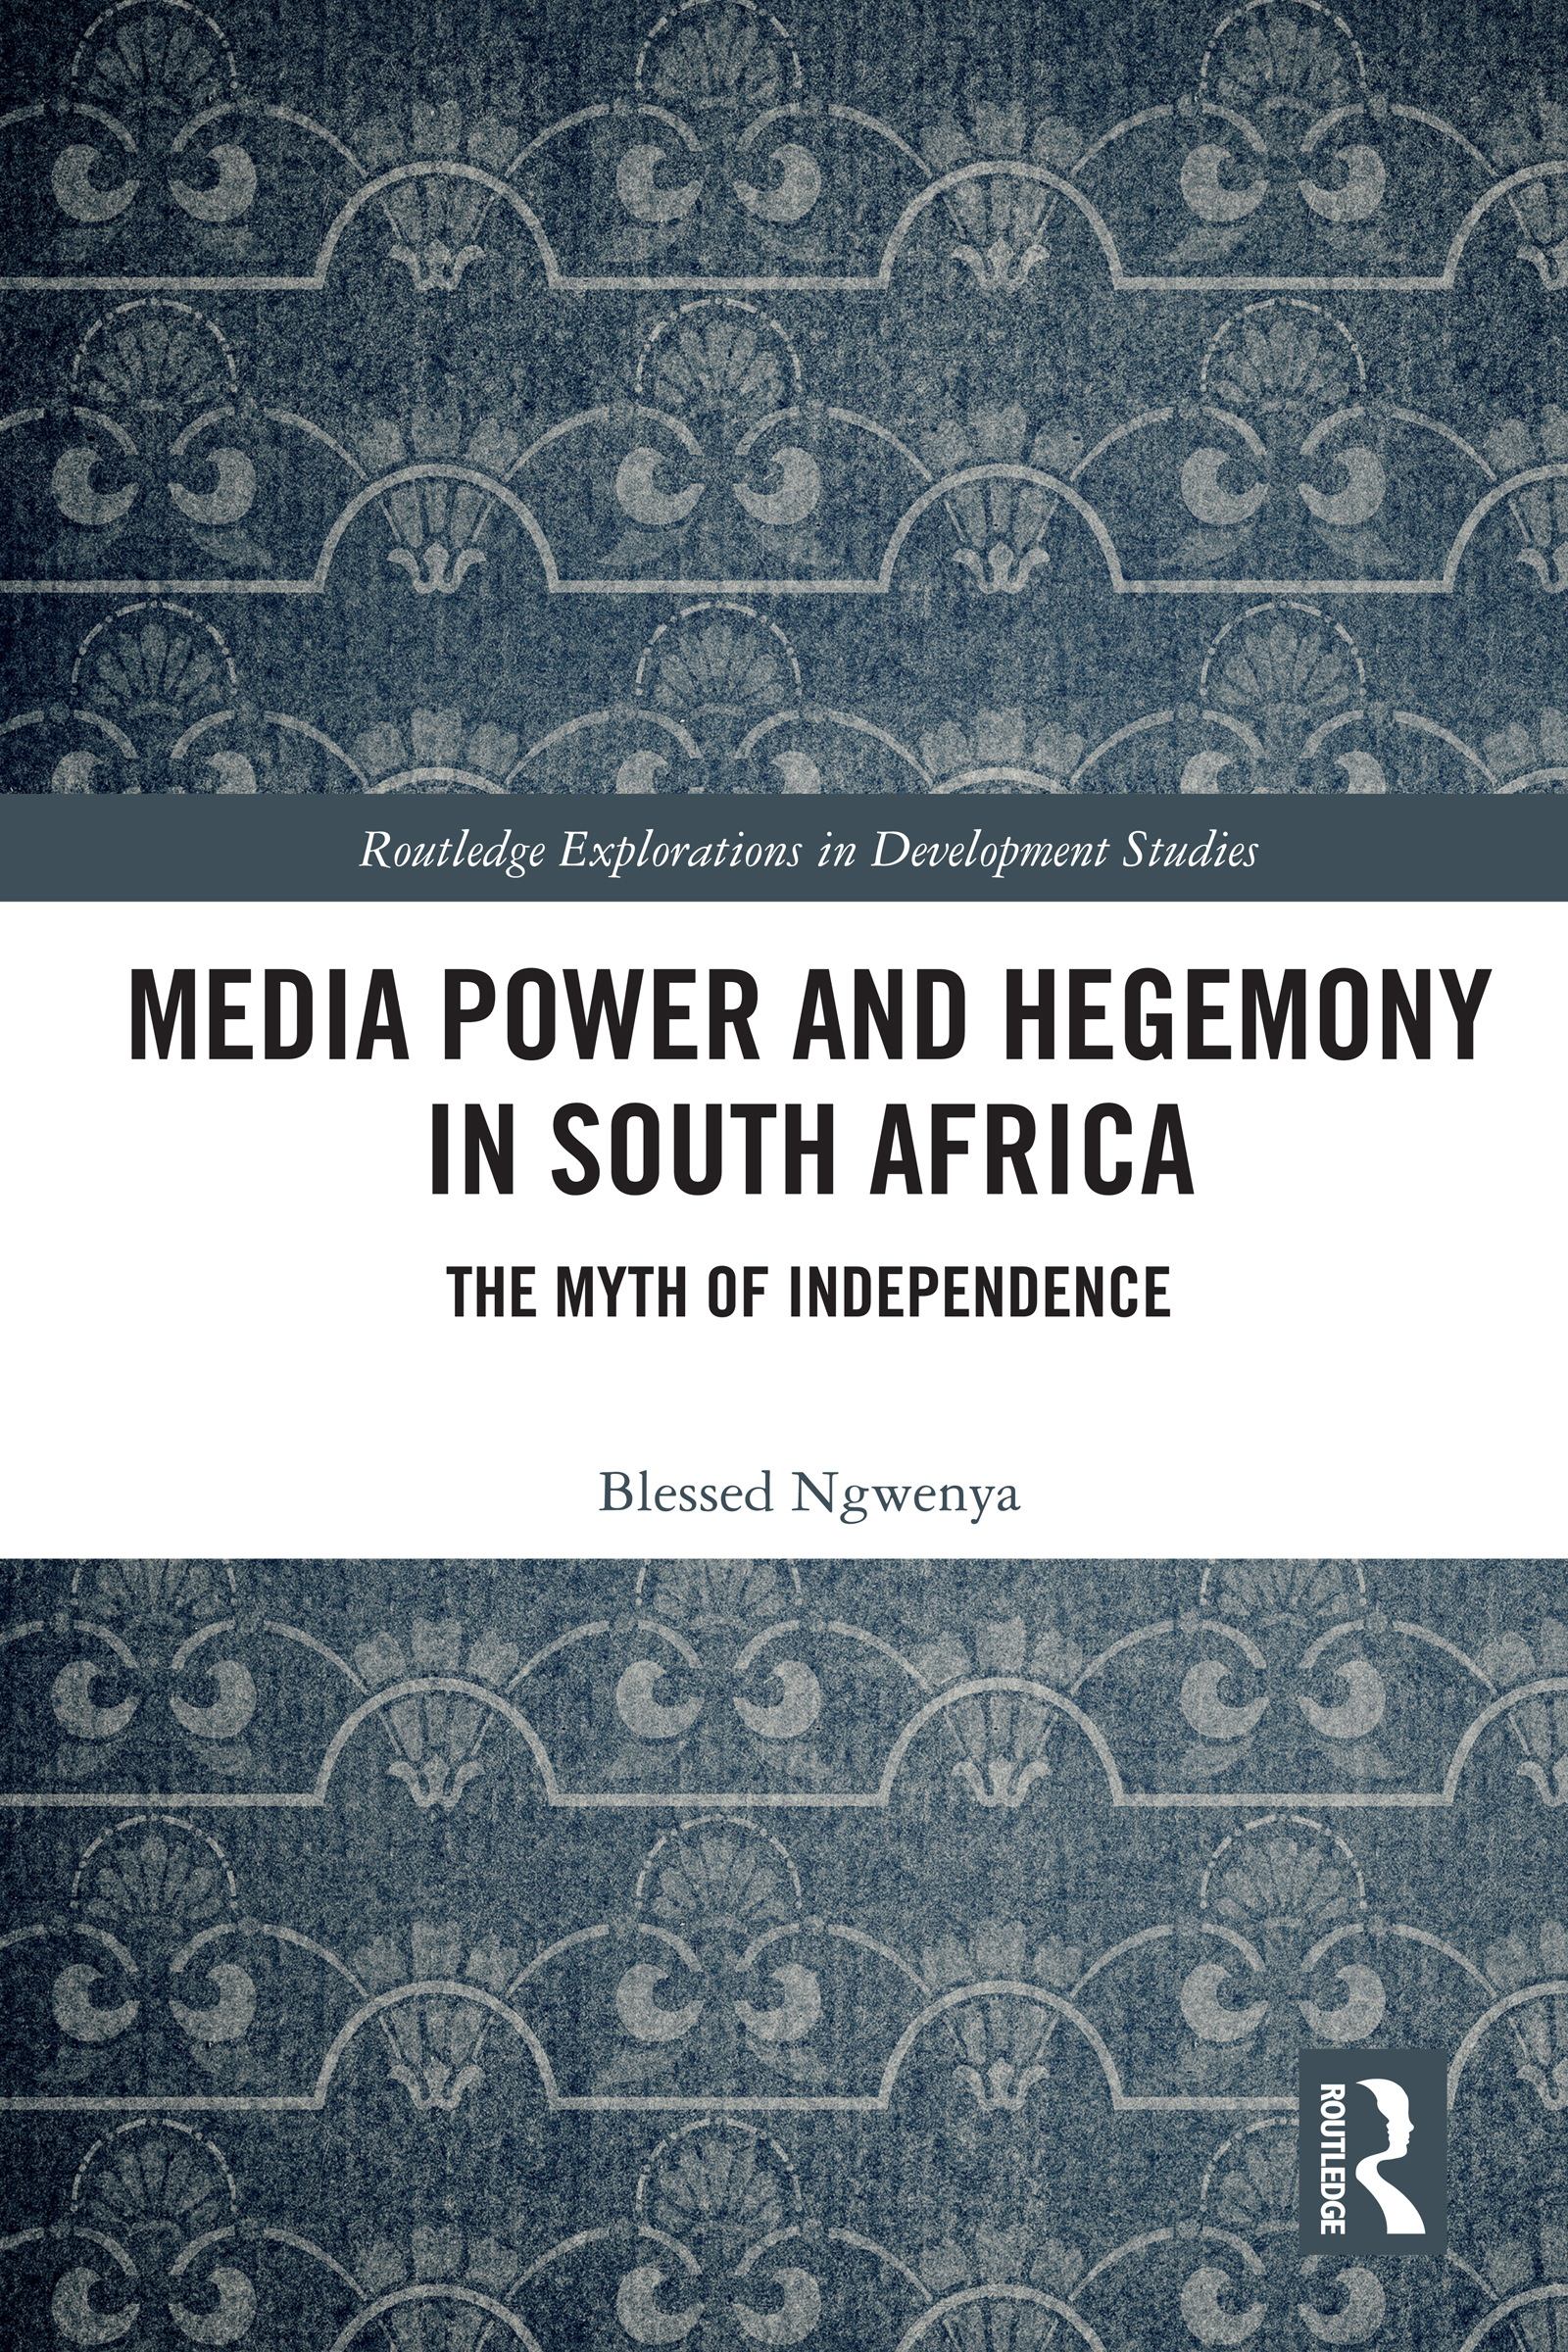 Media Power and Hegemony in South Africa